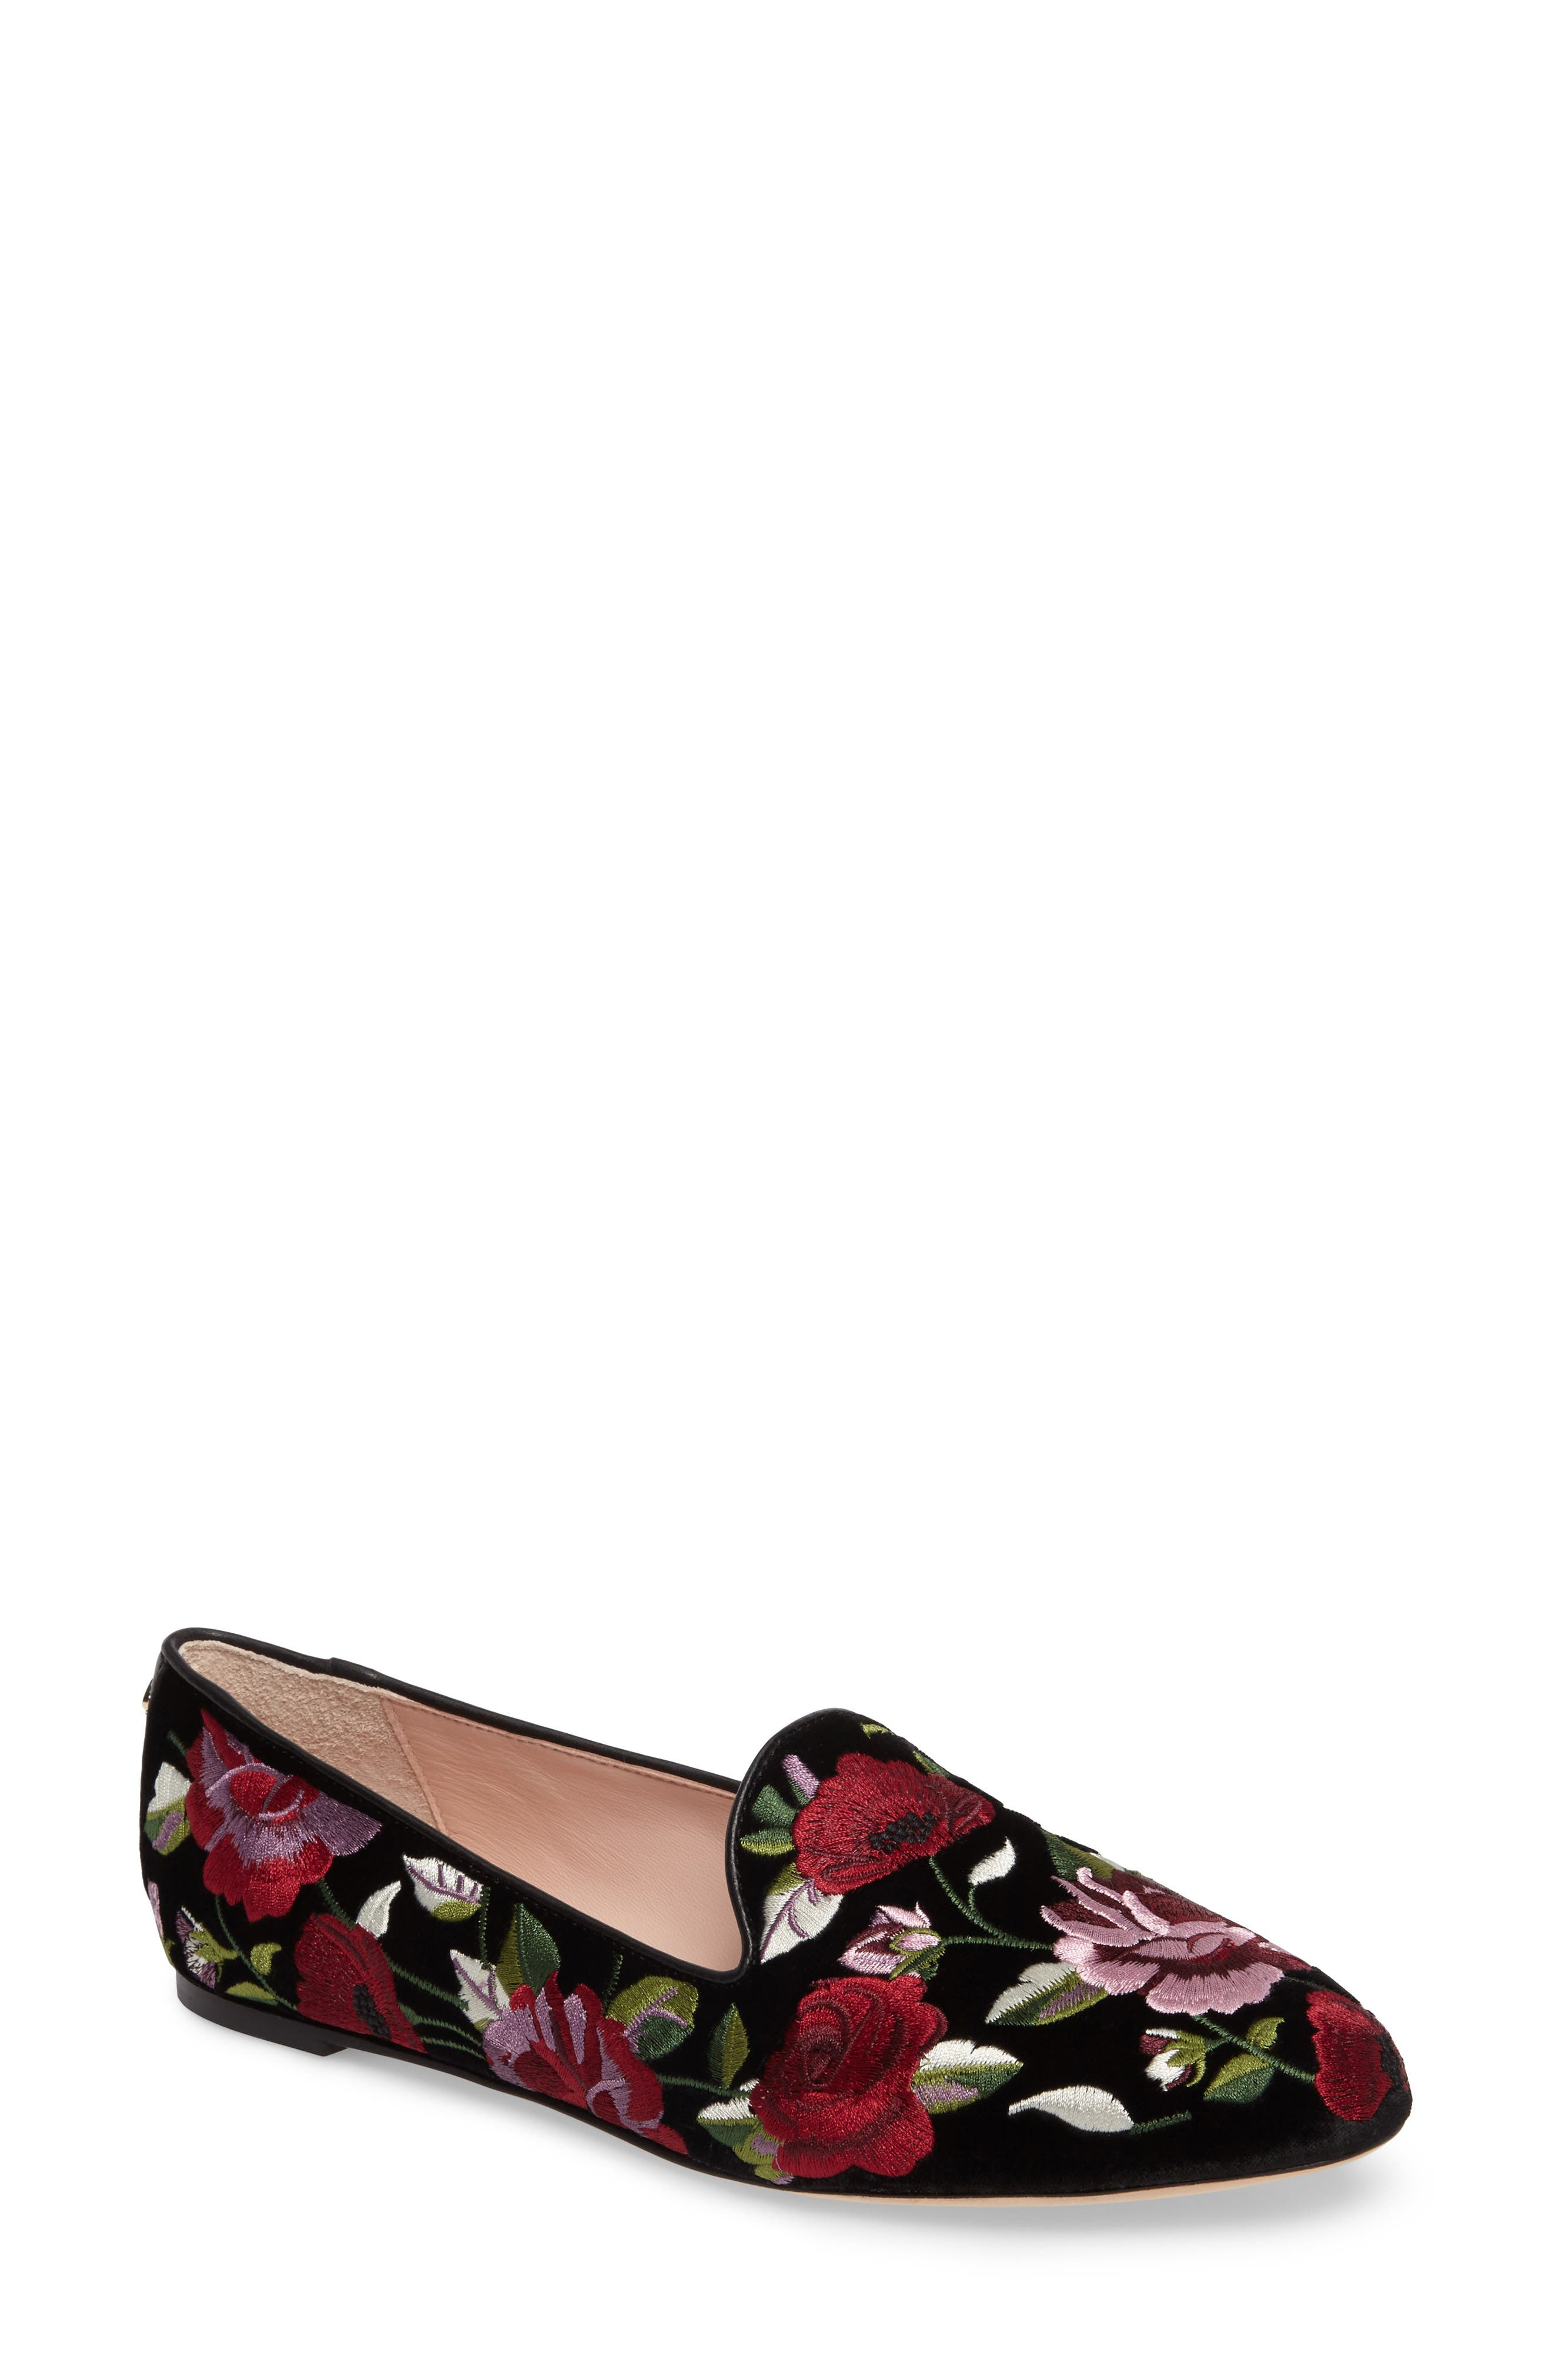 Main Image - kate spade new york swinton embroidered loafer (Women)